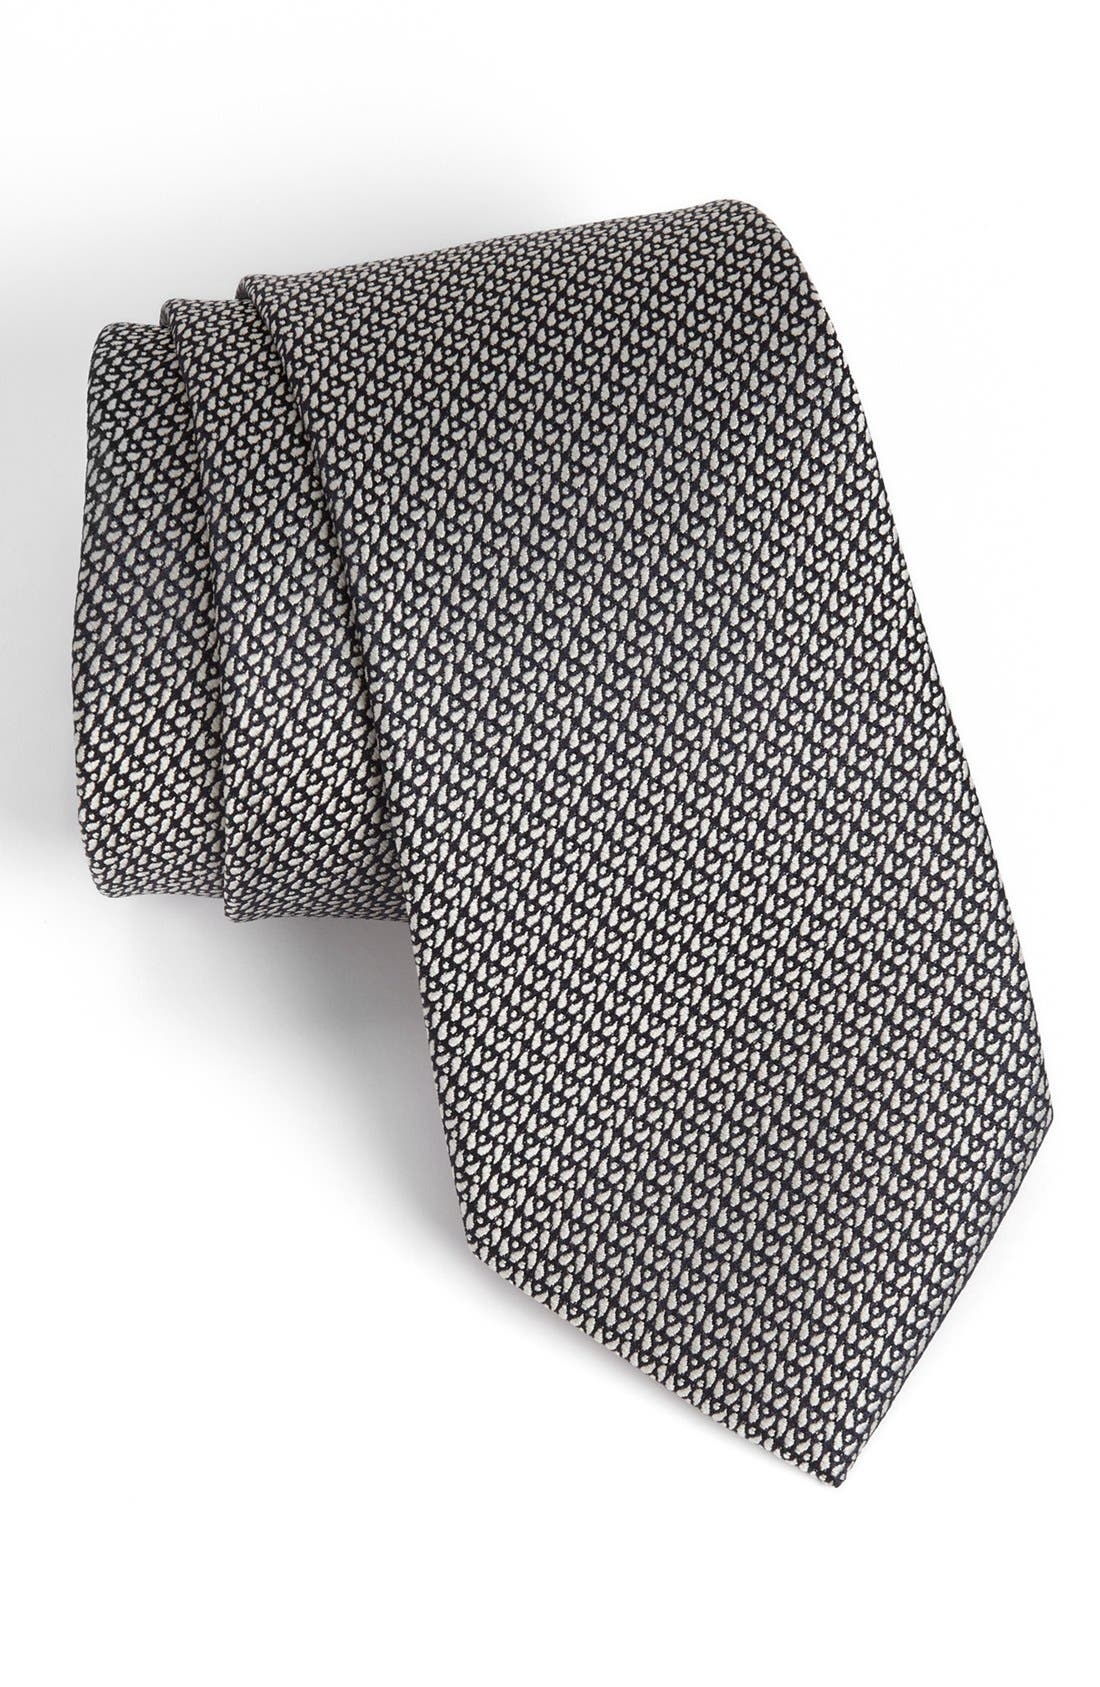 Alternate Image 1 Selected - Z Zegna Woven Tie